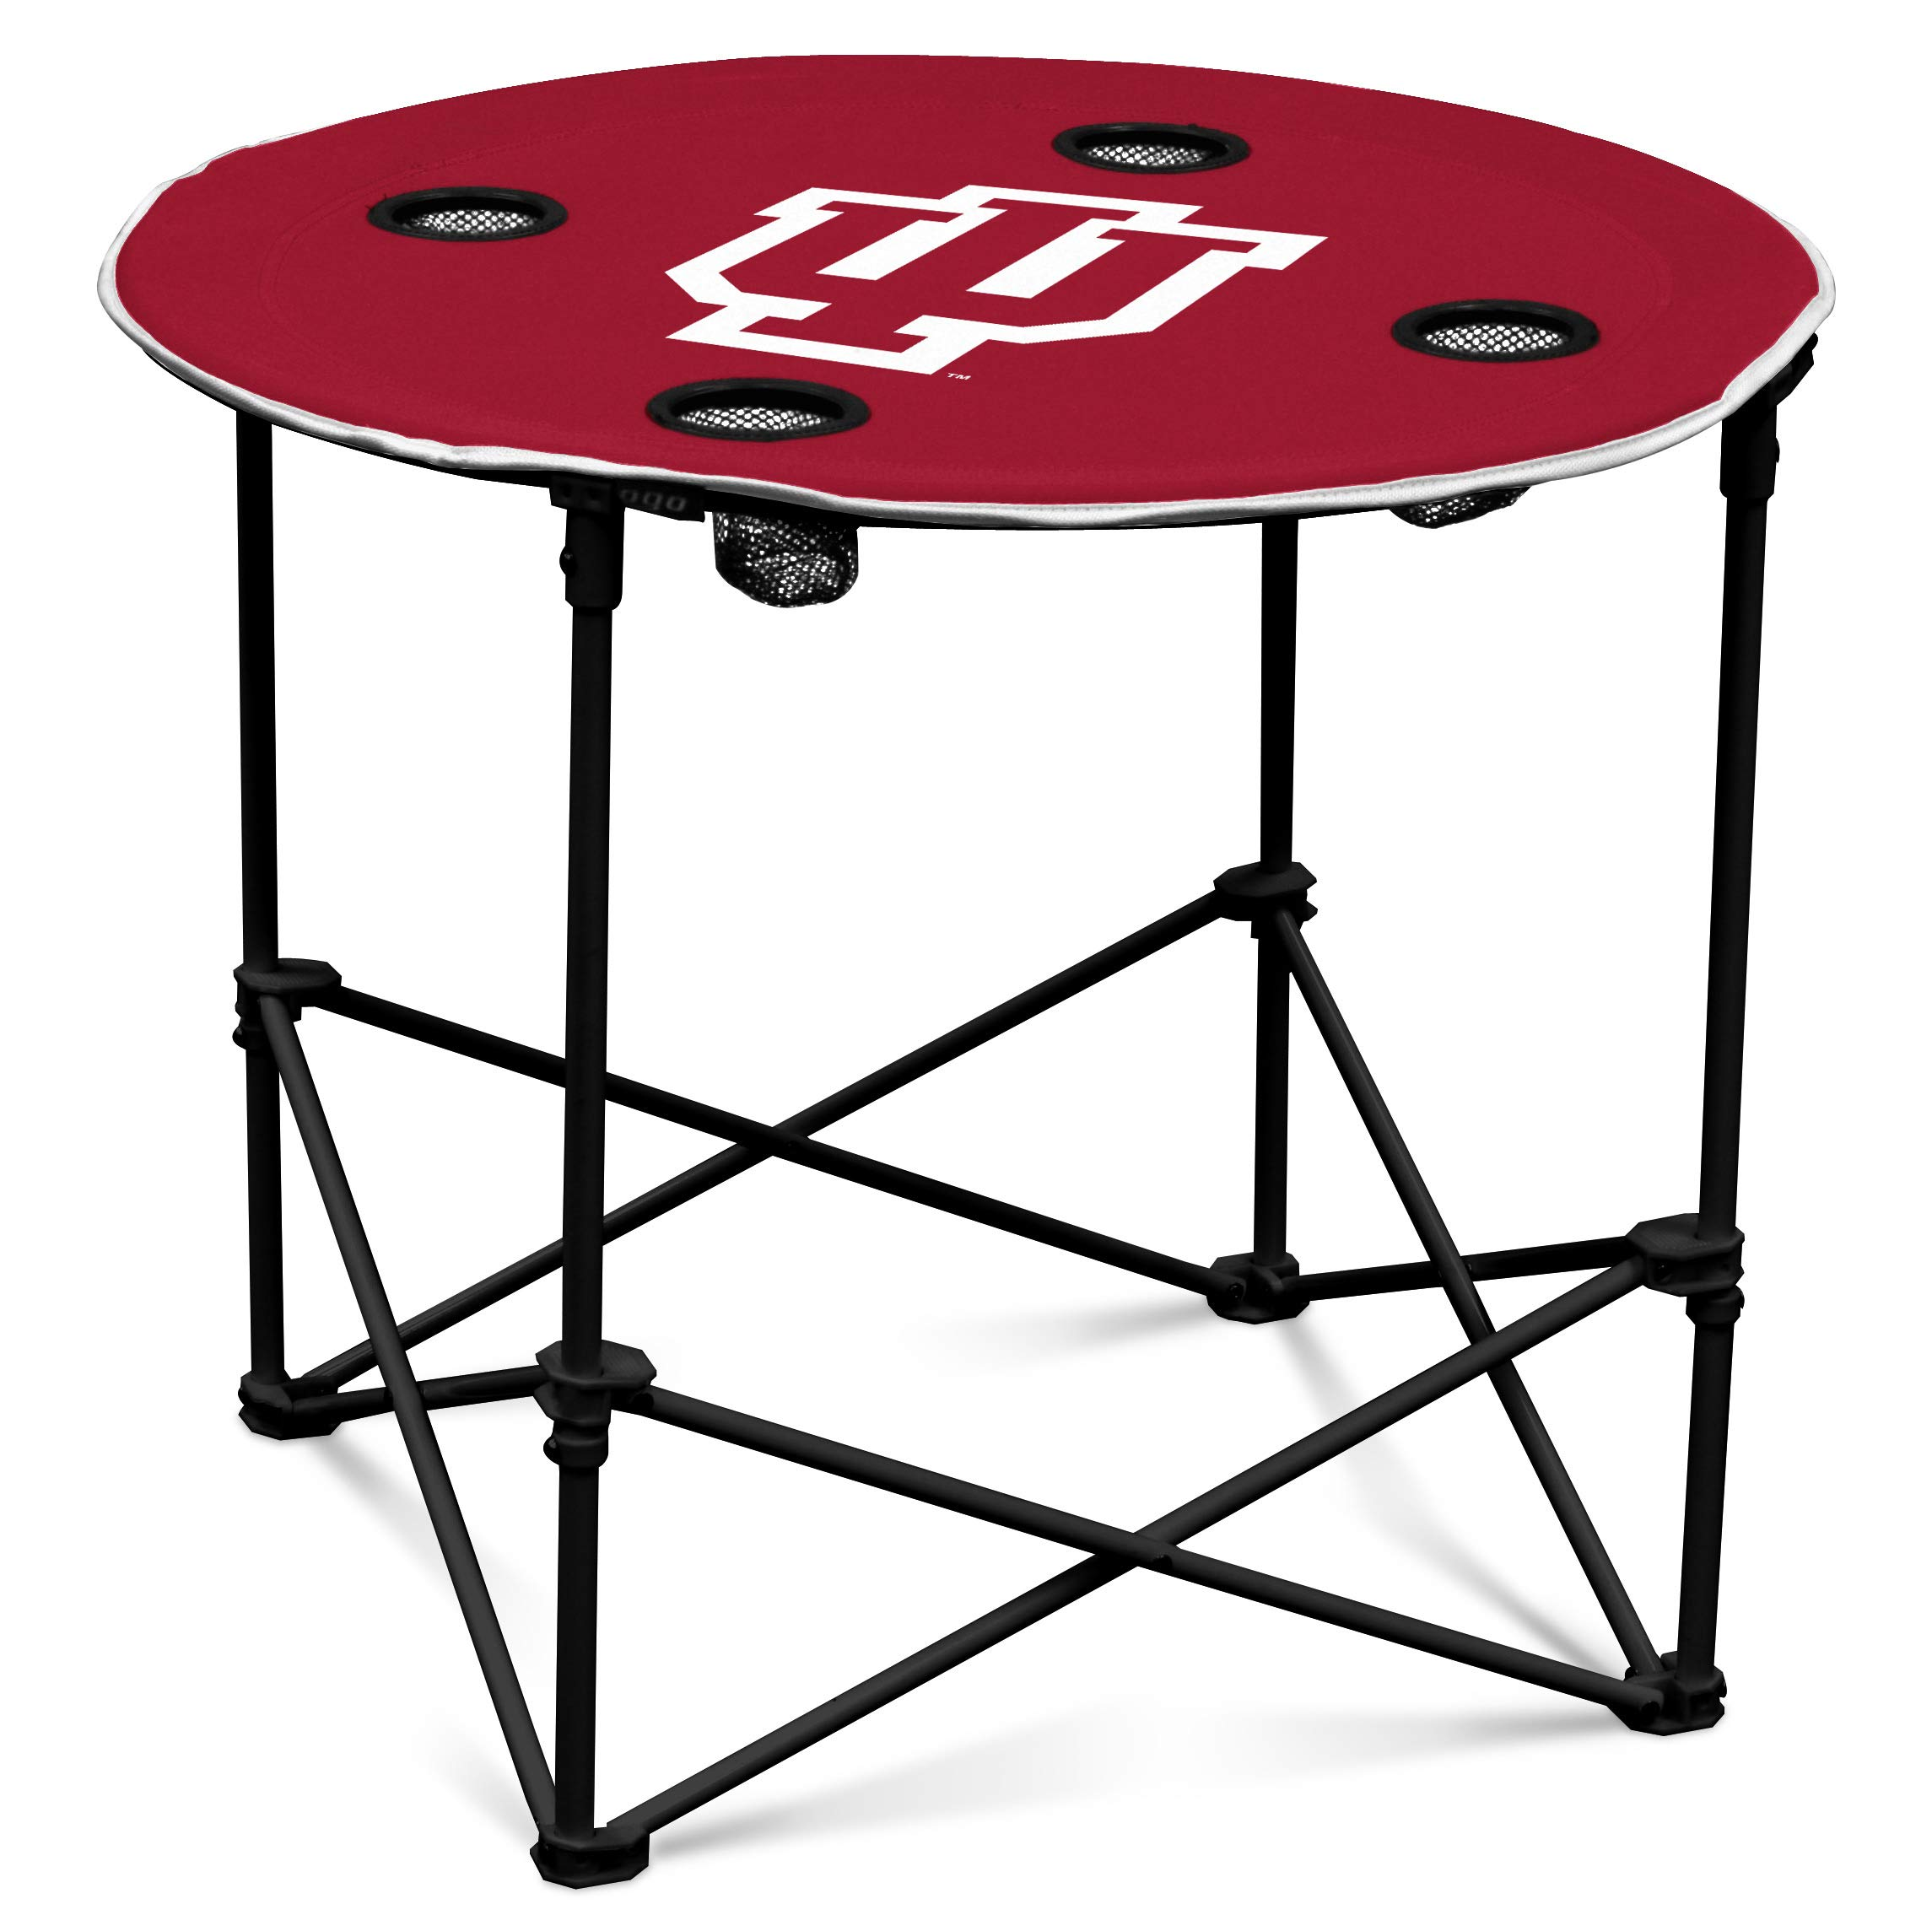 Indiana Hoosiers Collapsible Round Table with 4 Cup Holders and Carry Bag by Logo Brands